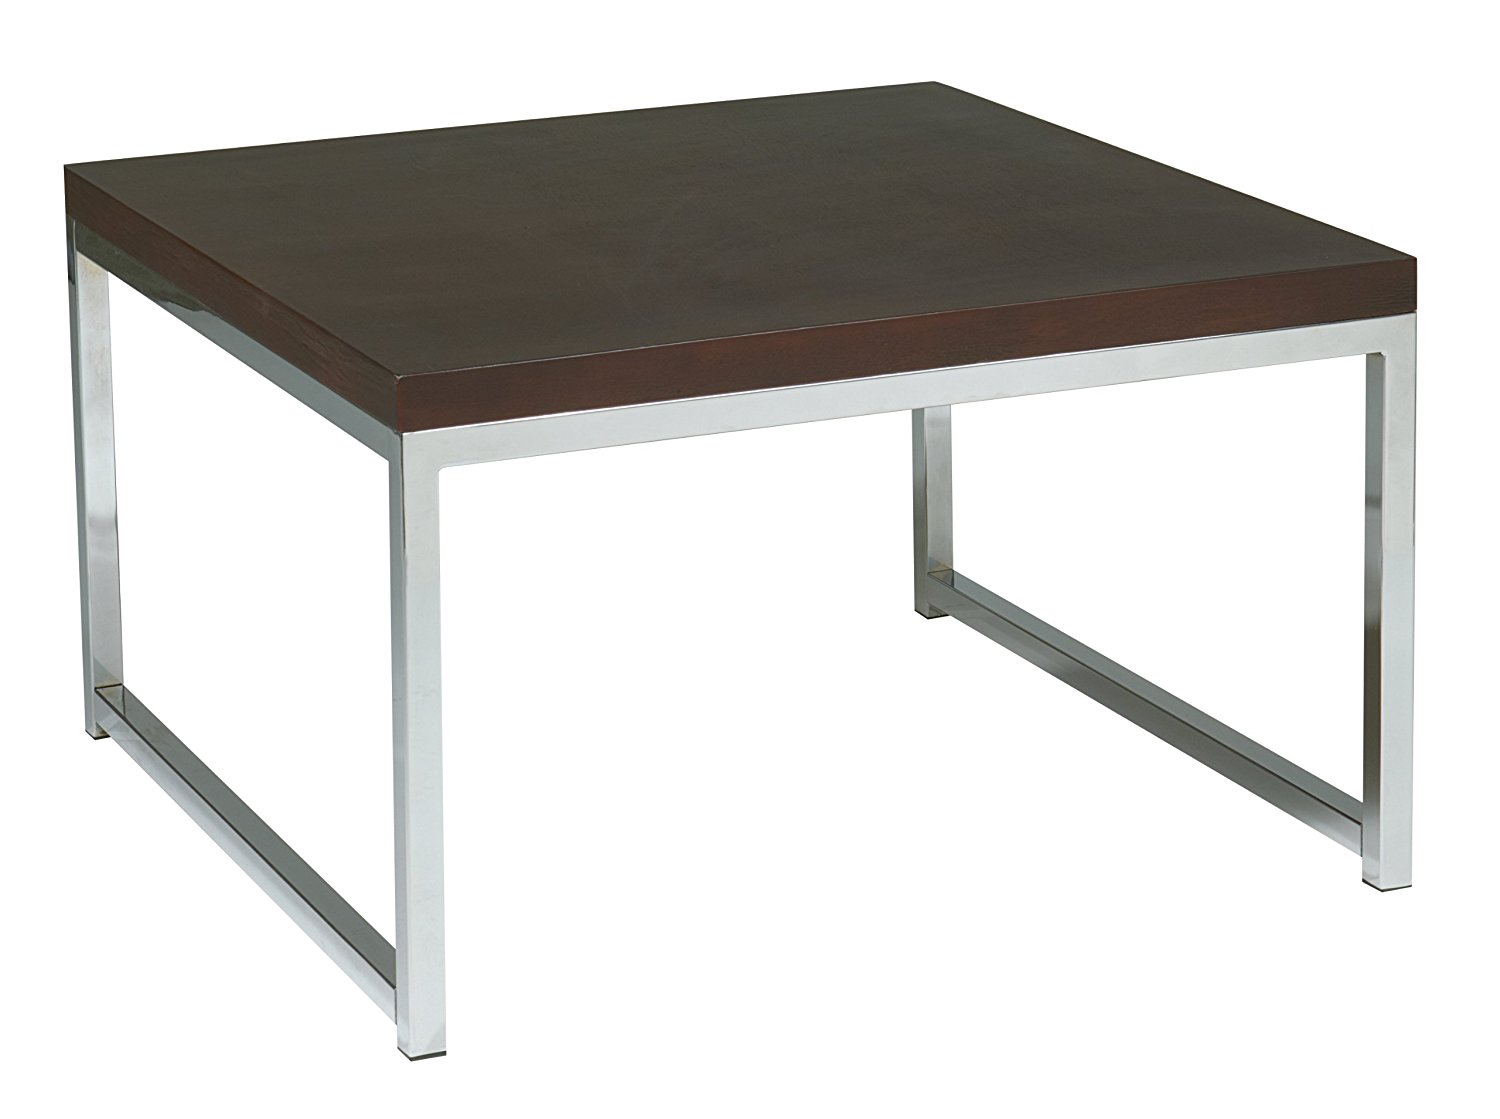 espresso accent table find tipton round get quotations work smart ave six wall street corner with chrome base outdoor bbq small glass west elm coffee pier one shower curtains cool